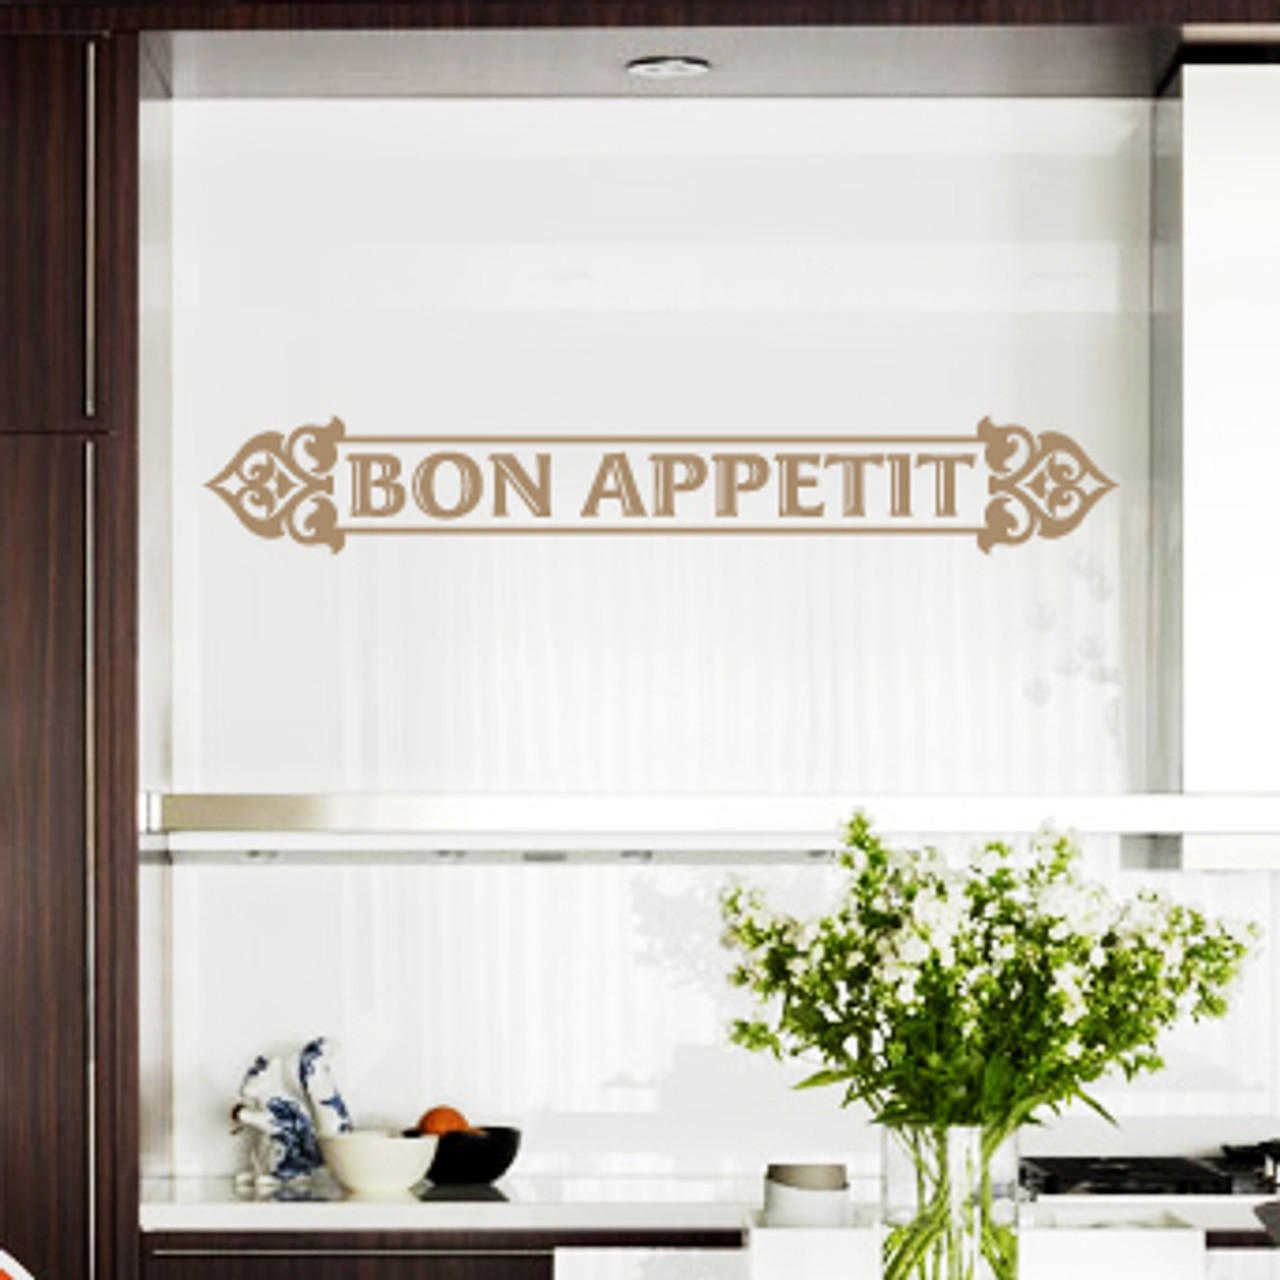 Bon Appetit 02 Wall Decal Decalmywall Com